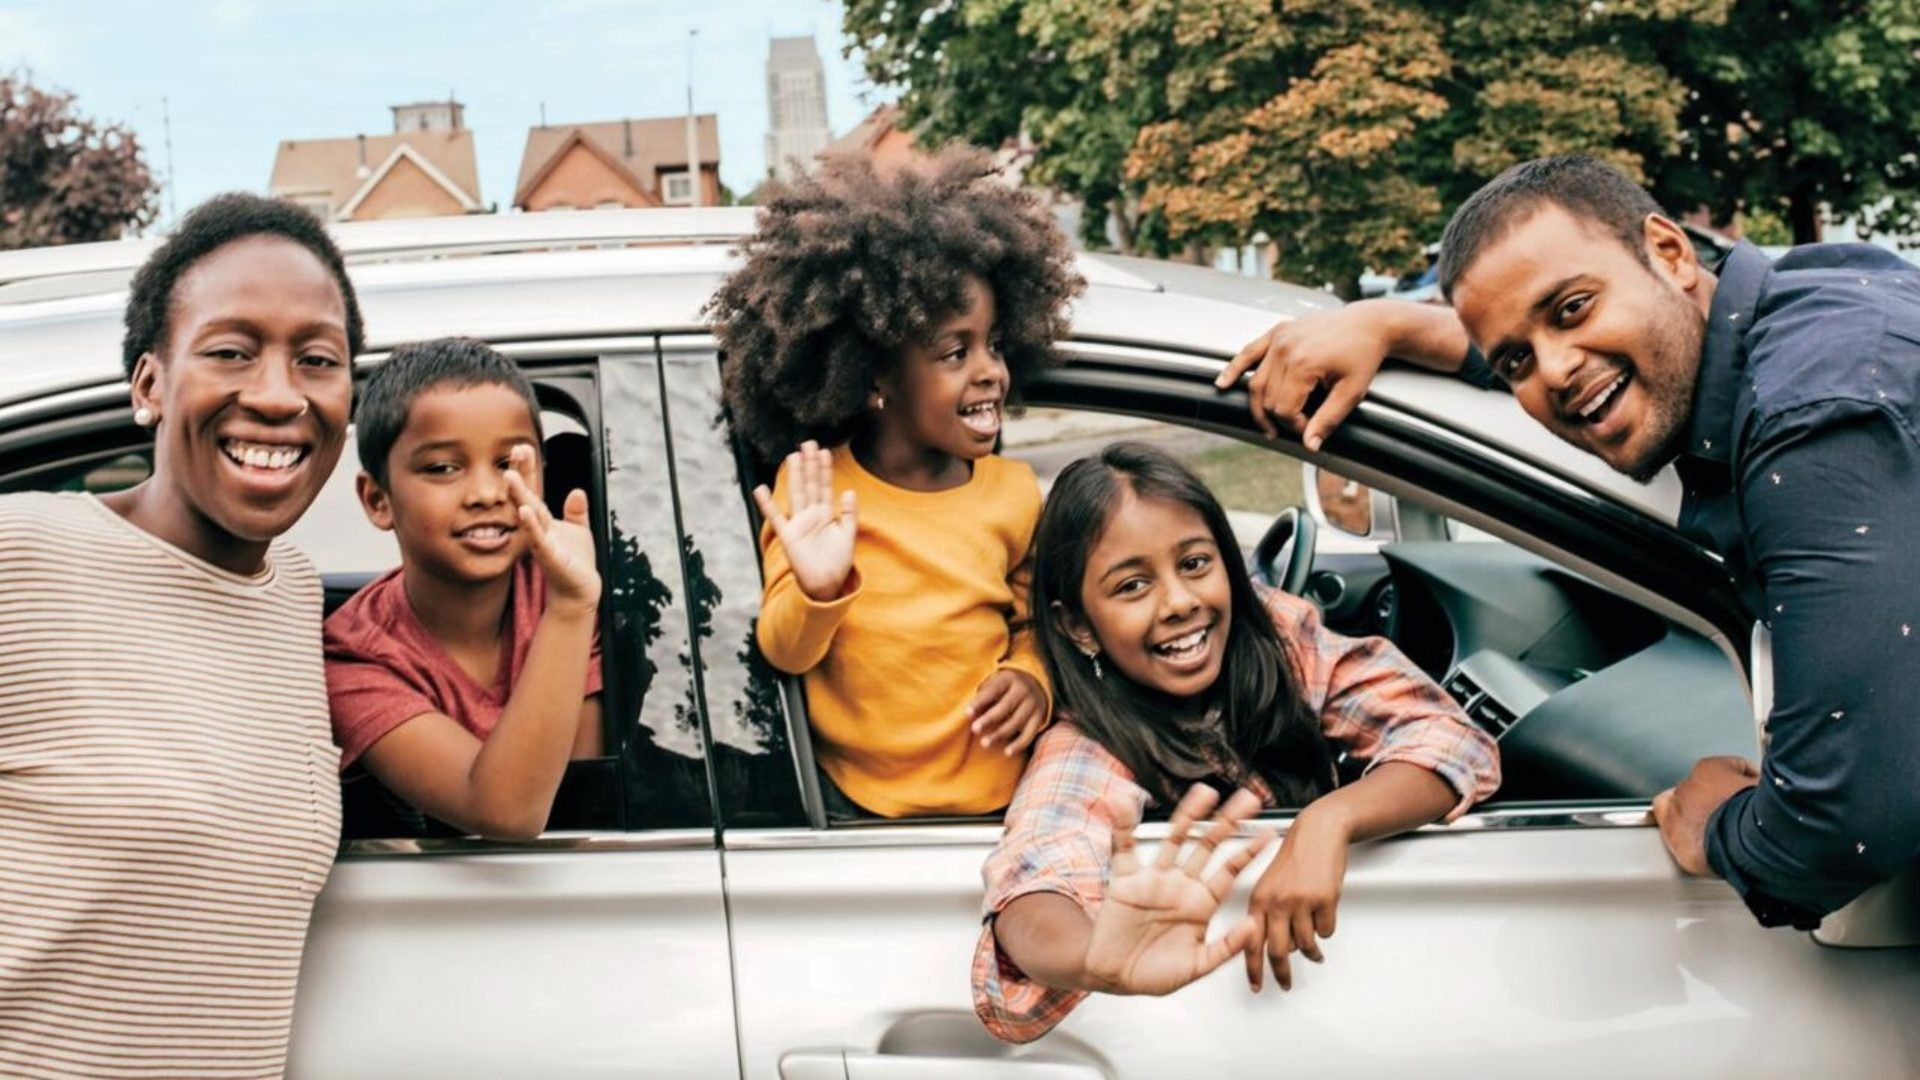 These Road Trips Are Perfect For Family-Friendly Fun This Summer